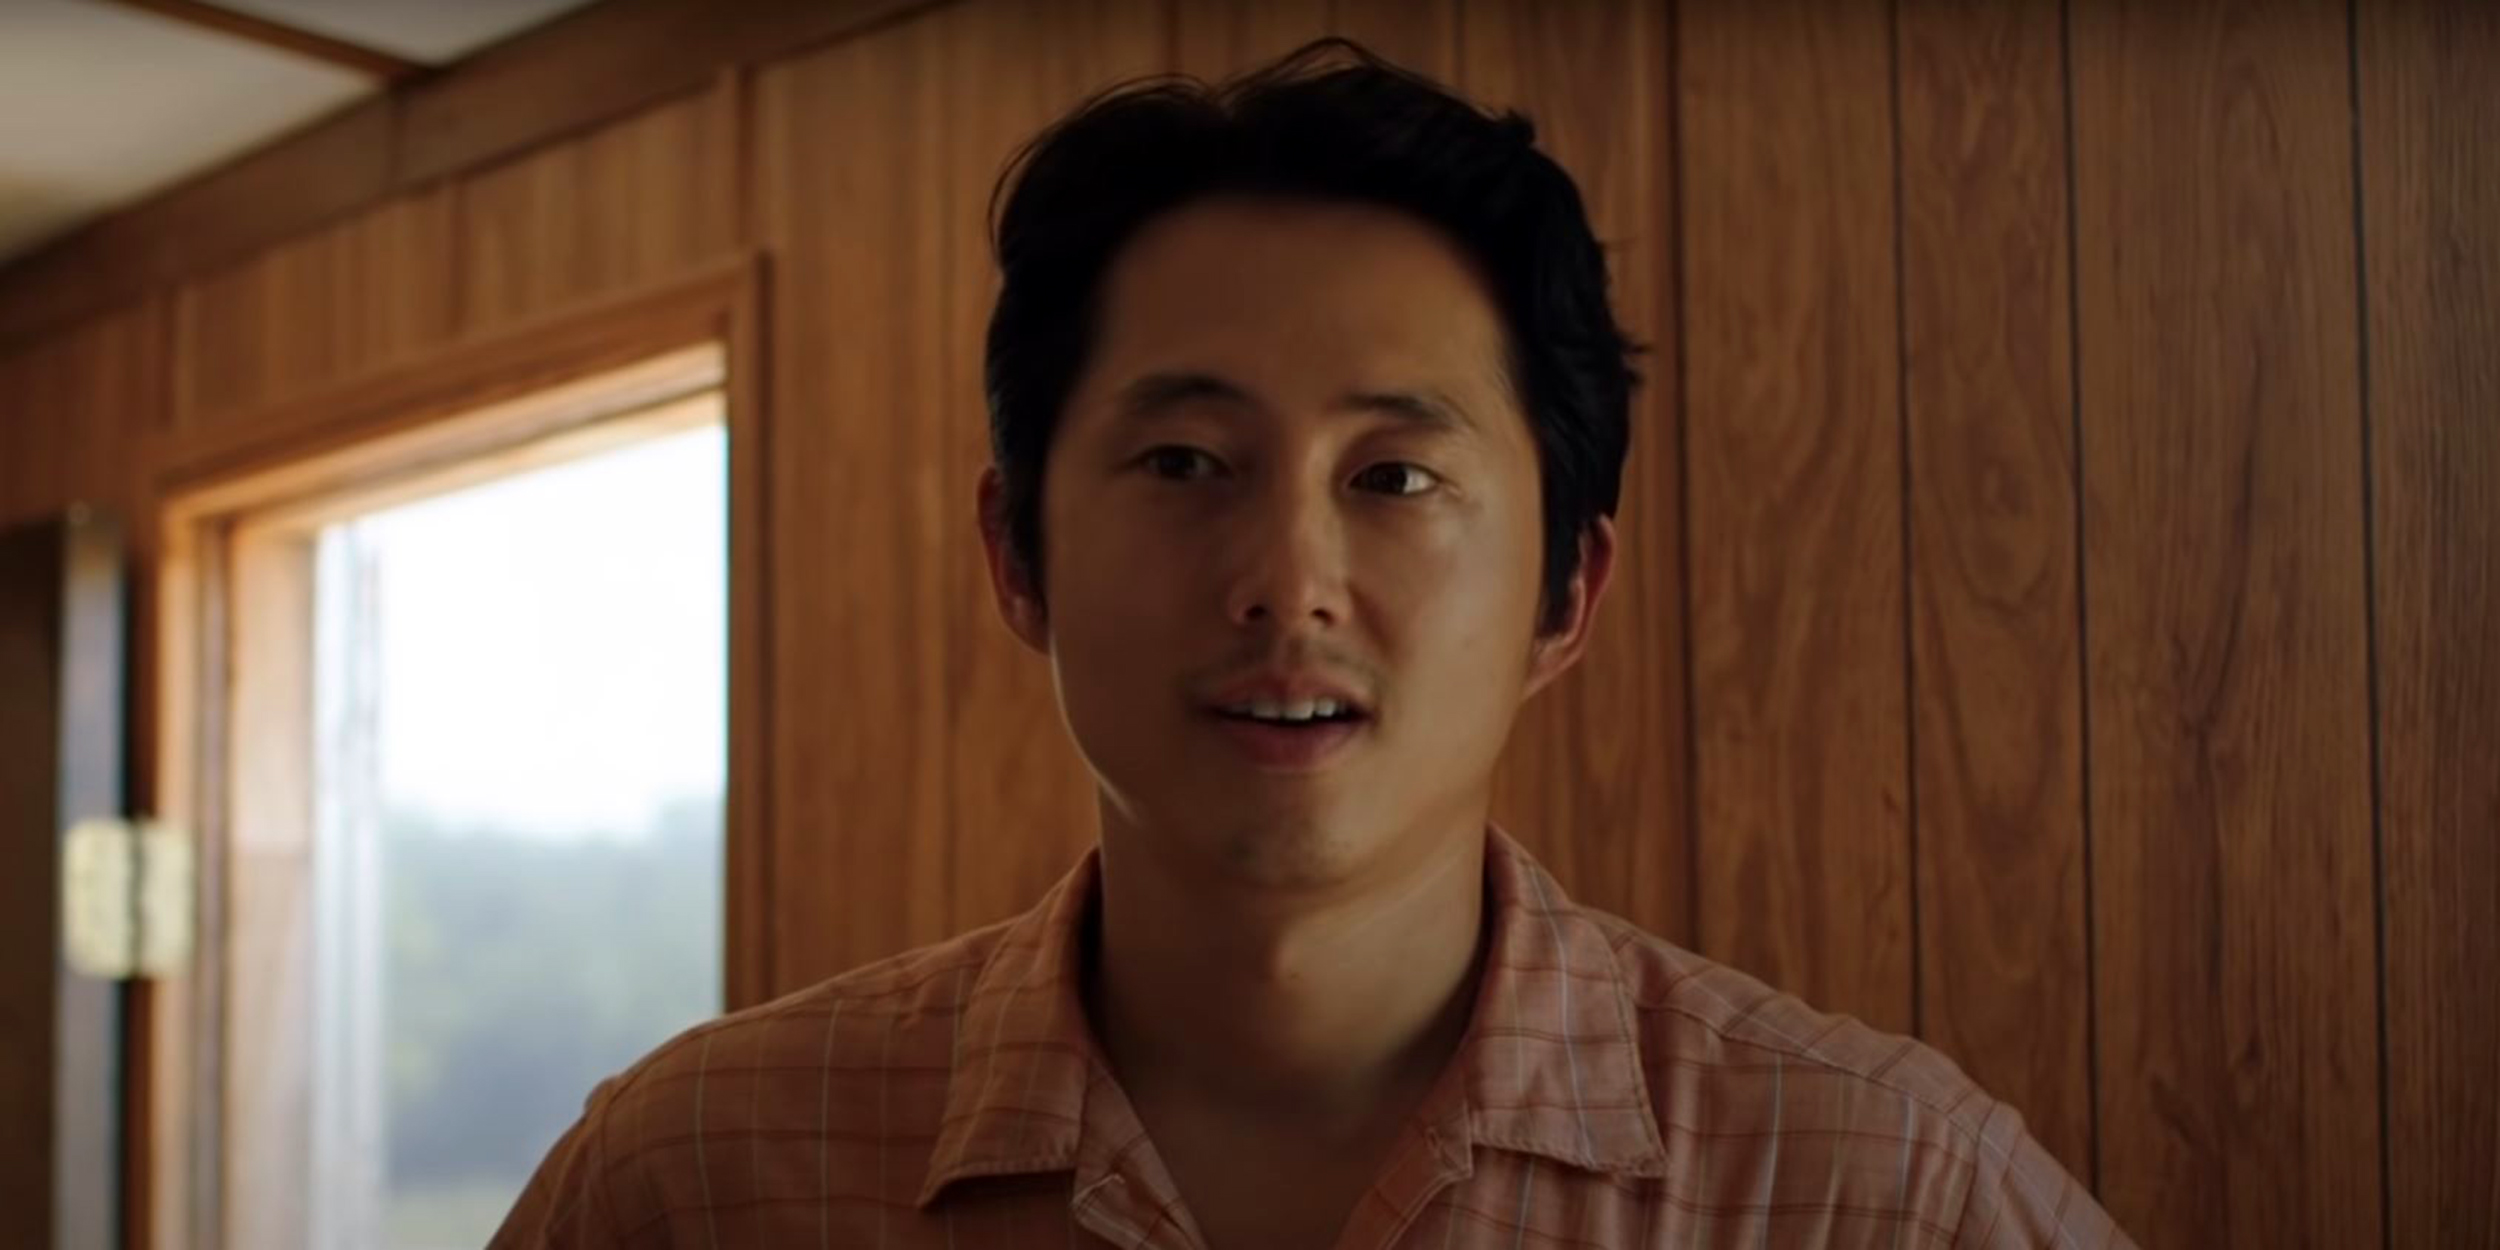 Steven Yeun drama 'Minari' will run in N.Y. and L.A. theaters, expand later